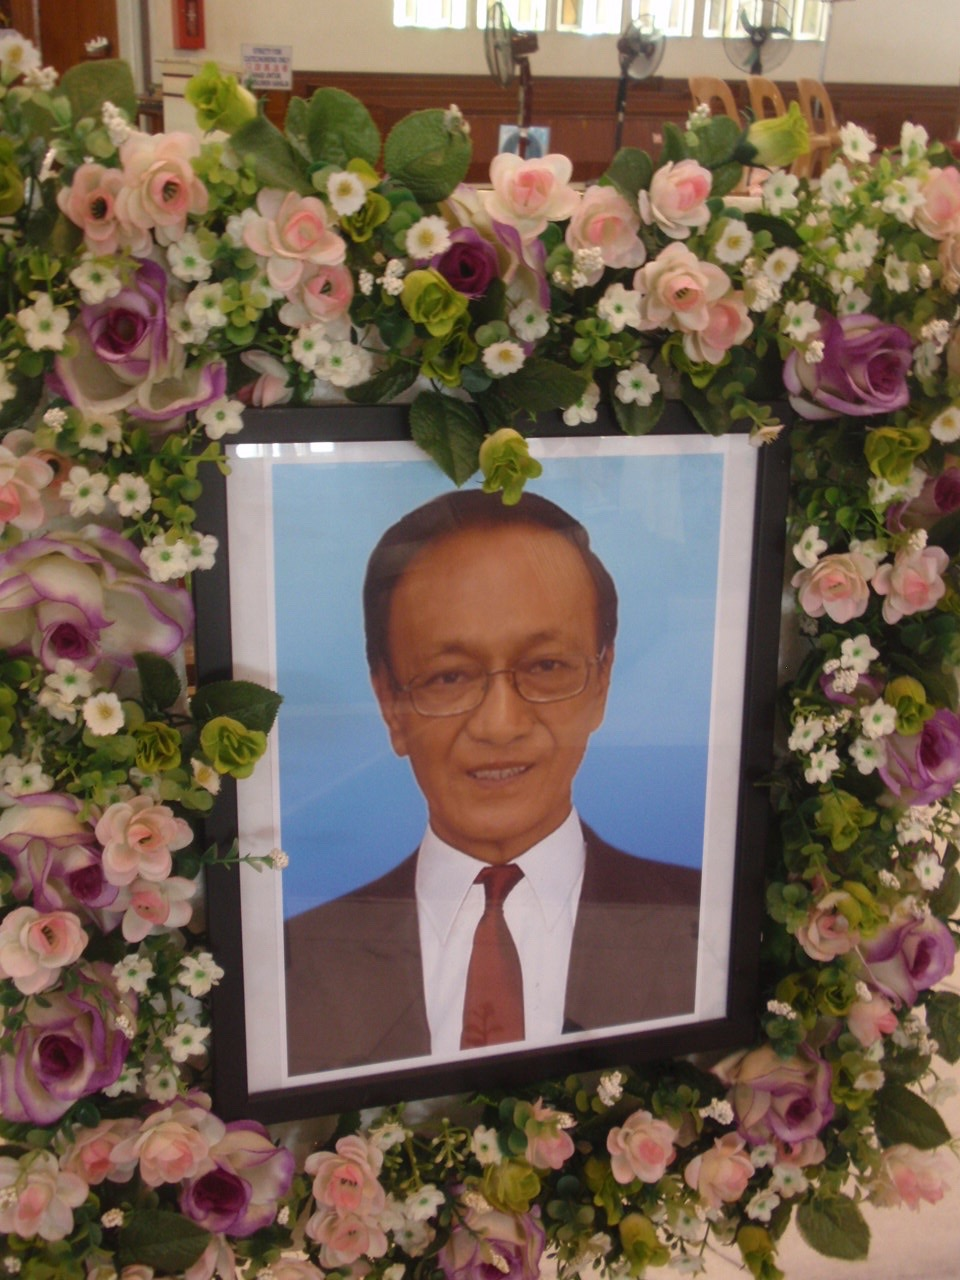 A framed photo of the deceased.